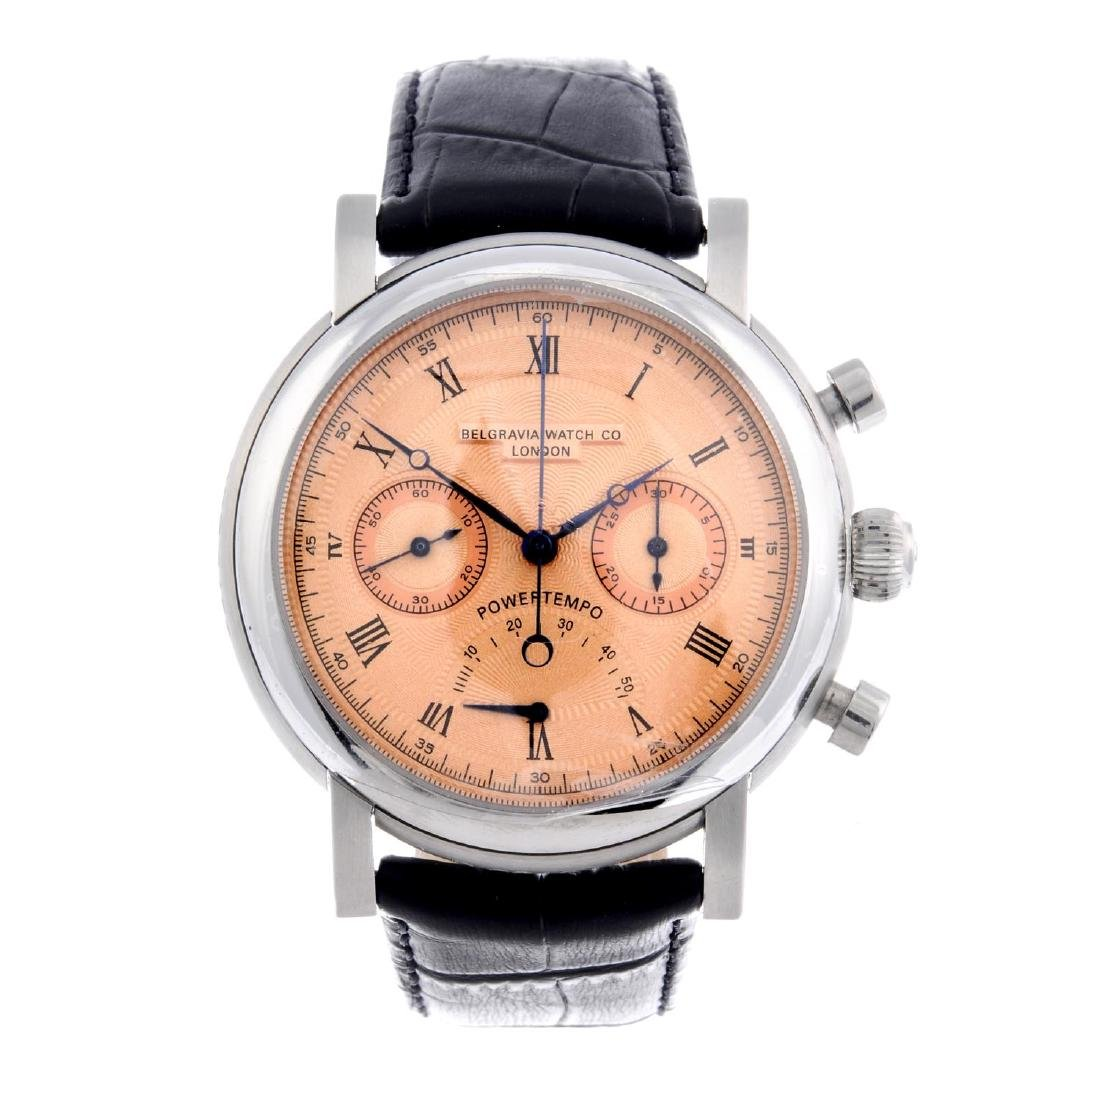 BELGRAVIA WATCH CO. - a gentleman's Power Tempo